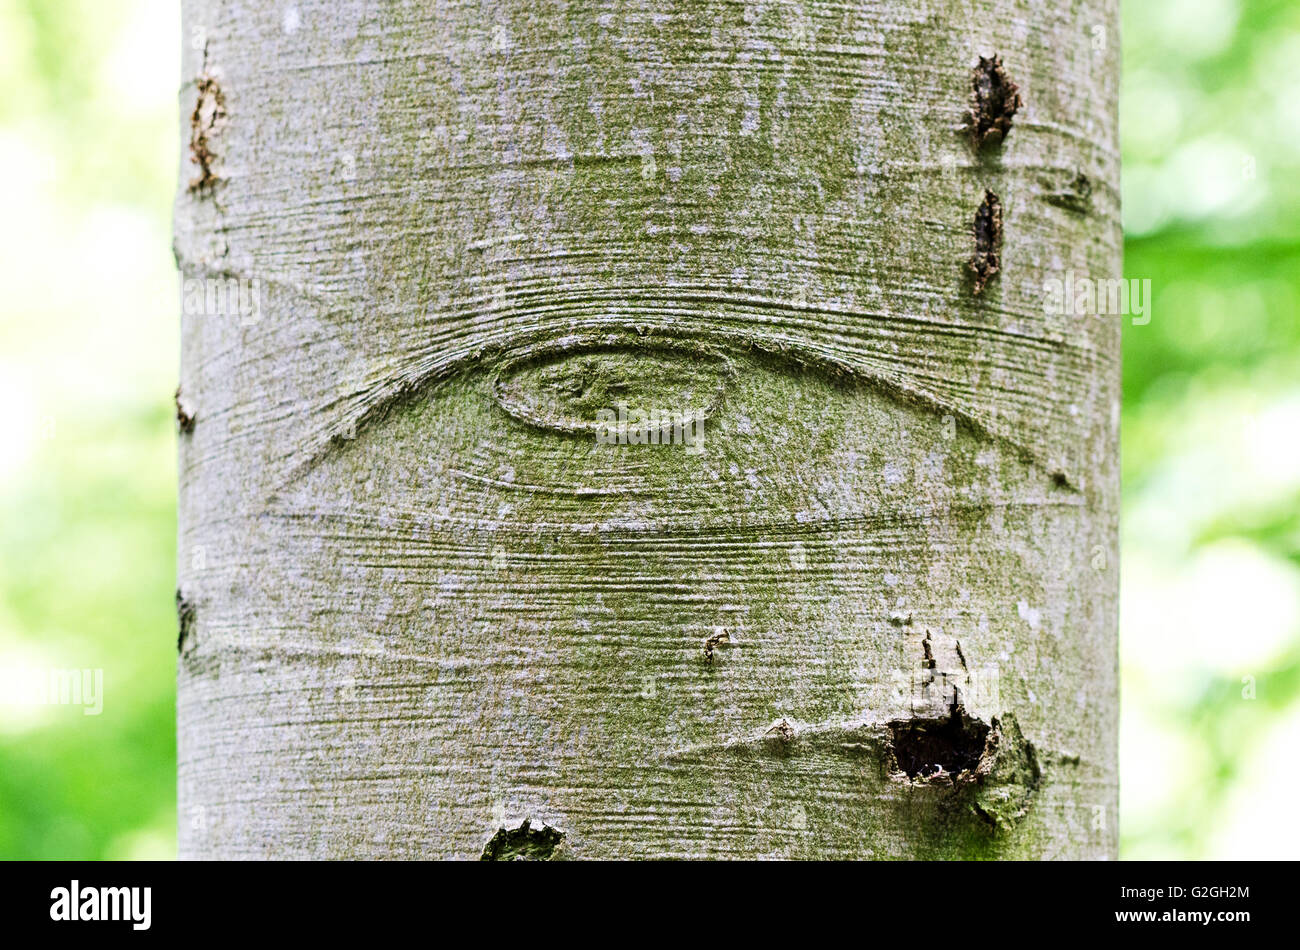 All seeing eye of god on a tree bark also called eye of all seeing eye of god on a tree bark also called eye of providence symbol for the eye of god watching over mankind buycottarizona